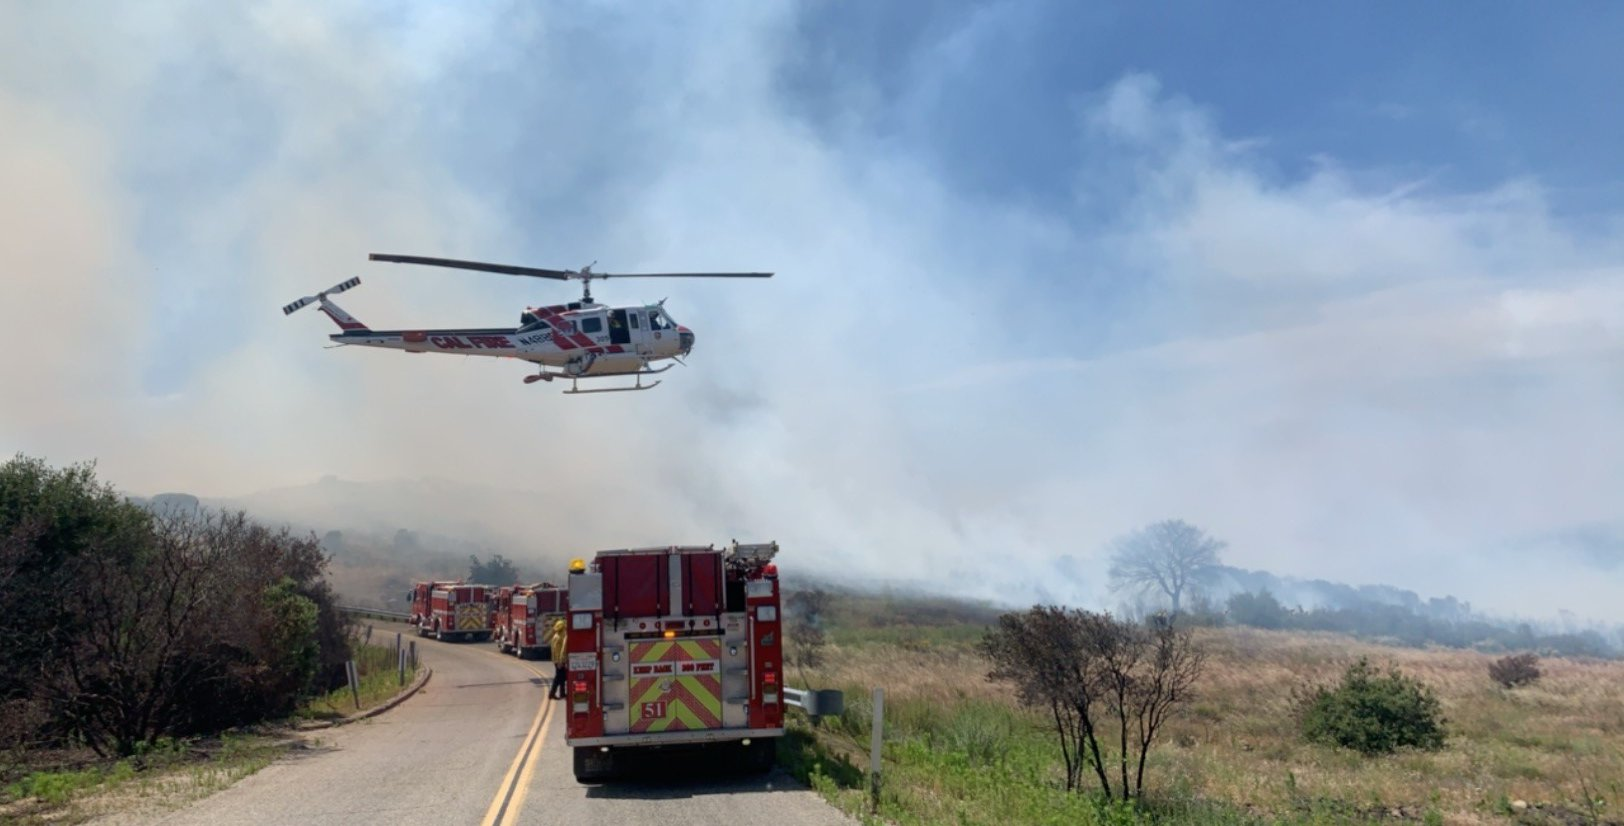 Firefighters were battling the Grand Fire in Lake Elsinore on June 8, 2020. (Cal Fire/Riverside County Fire Department)